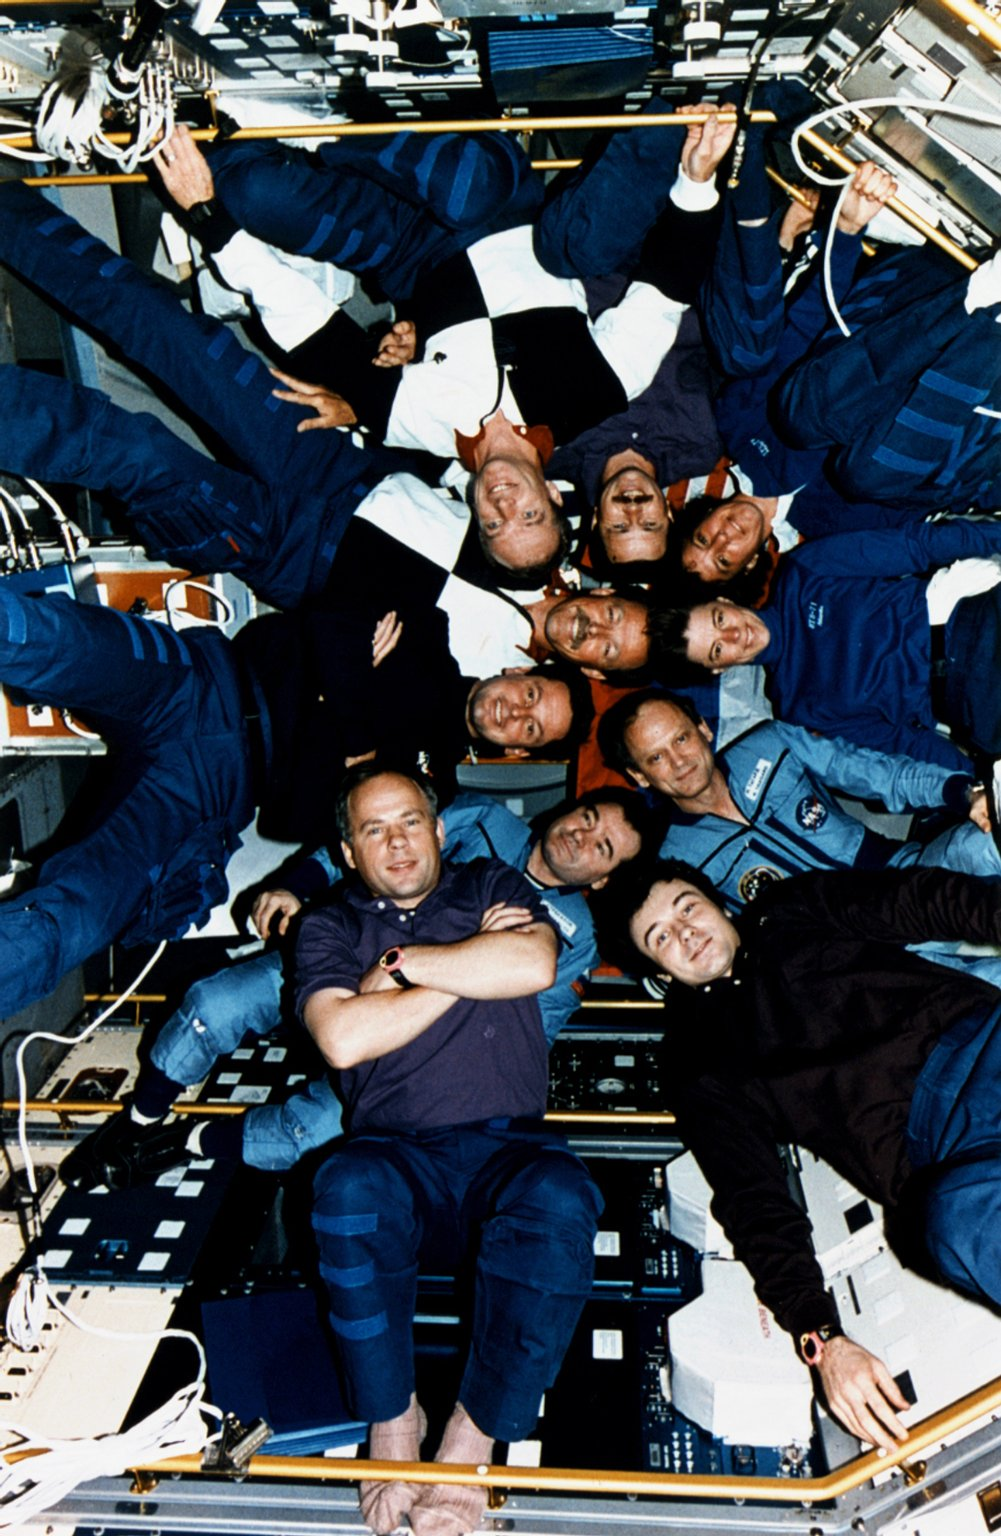 Crewmembers of STS-71, Mir-18 and Mir-19 Pose for Inflight Picture